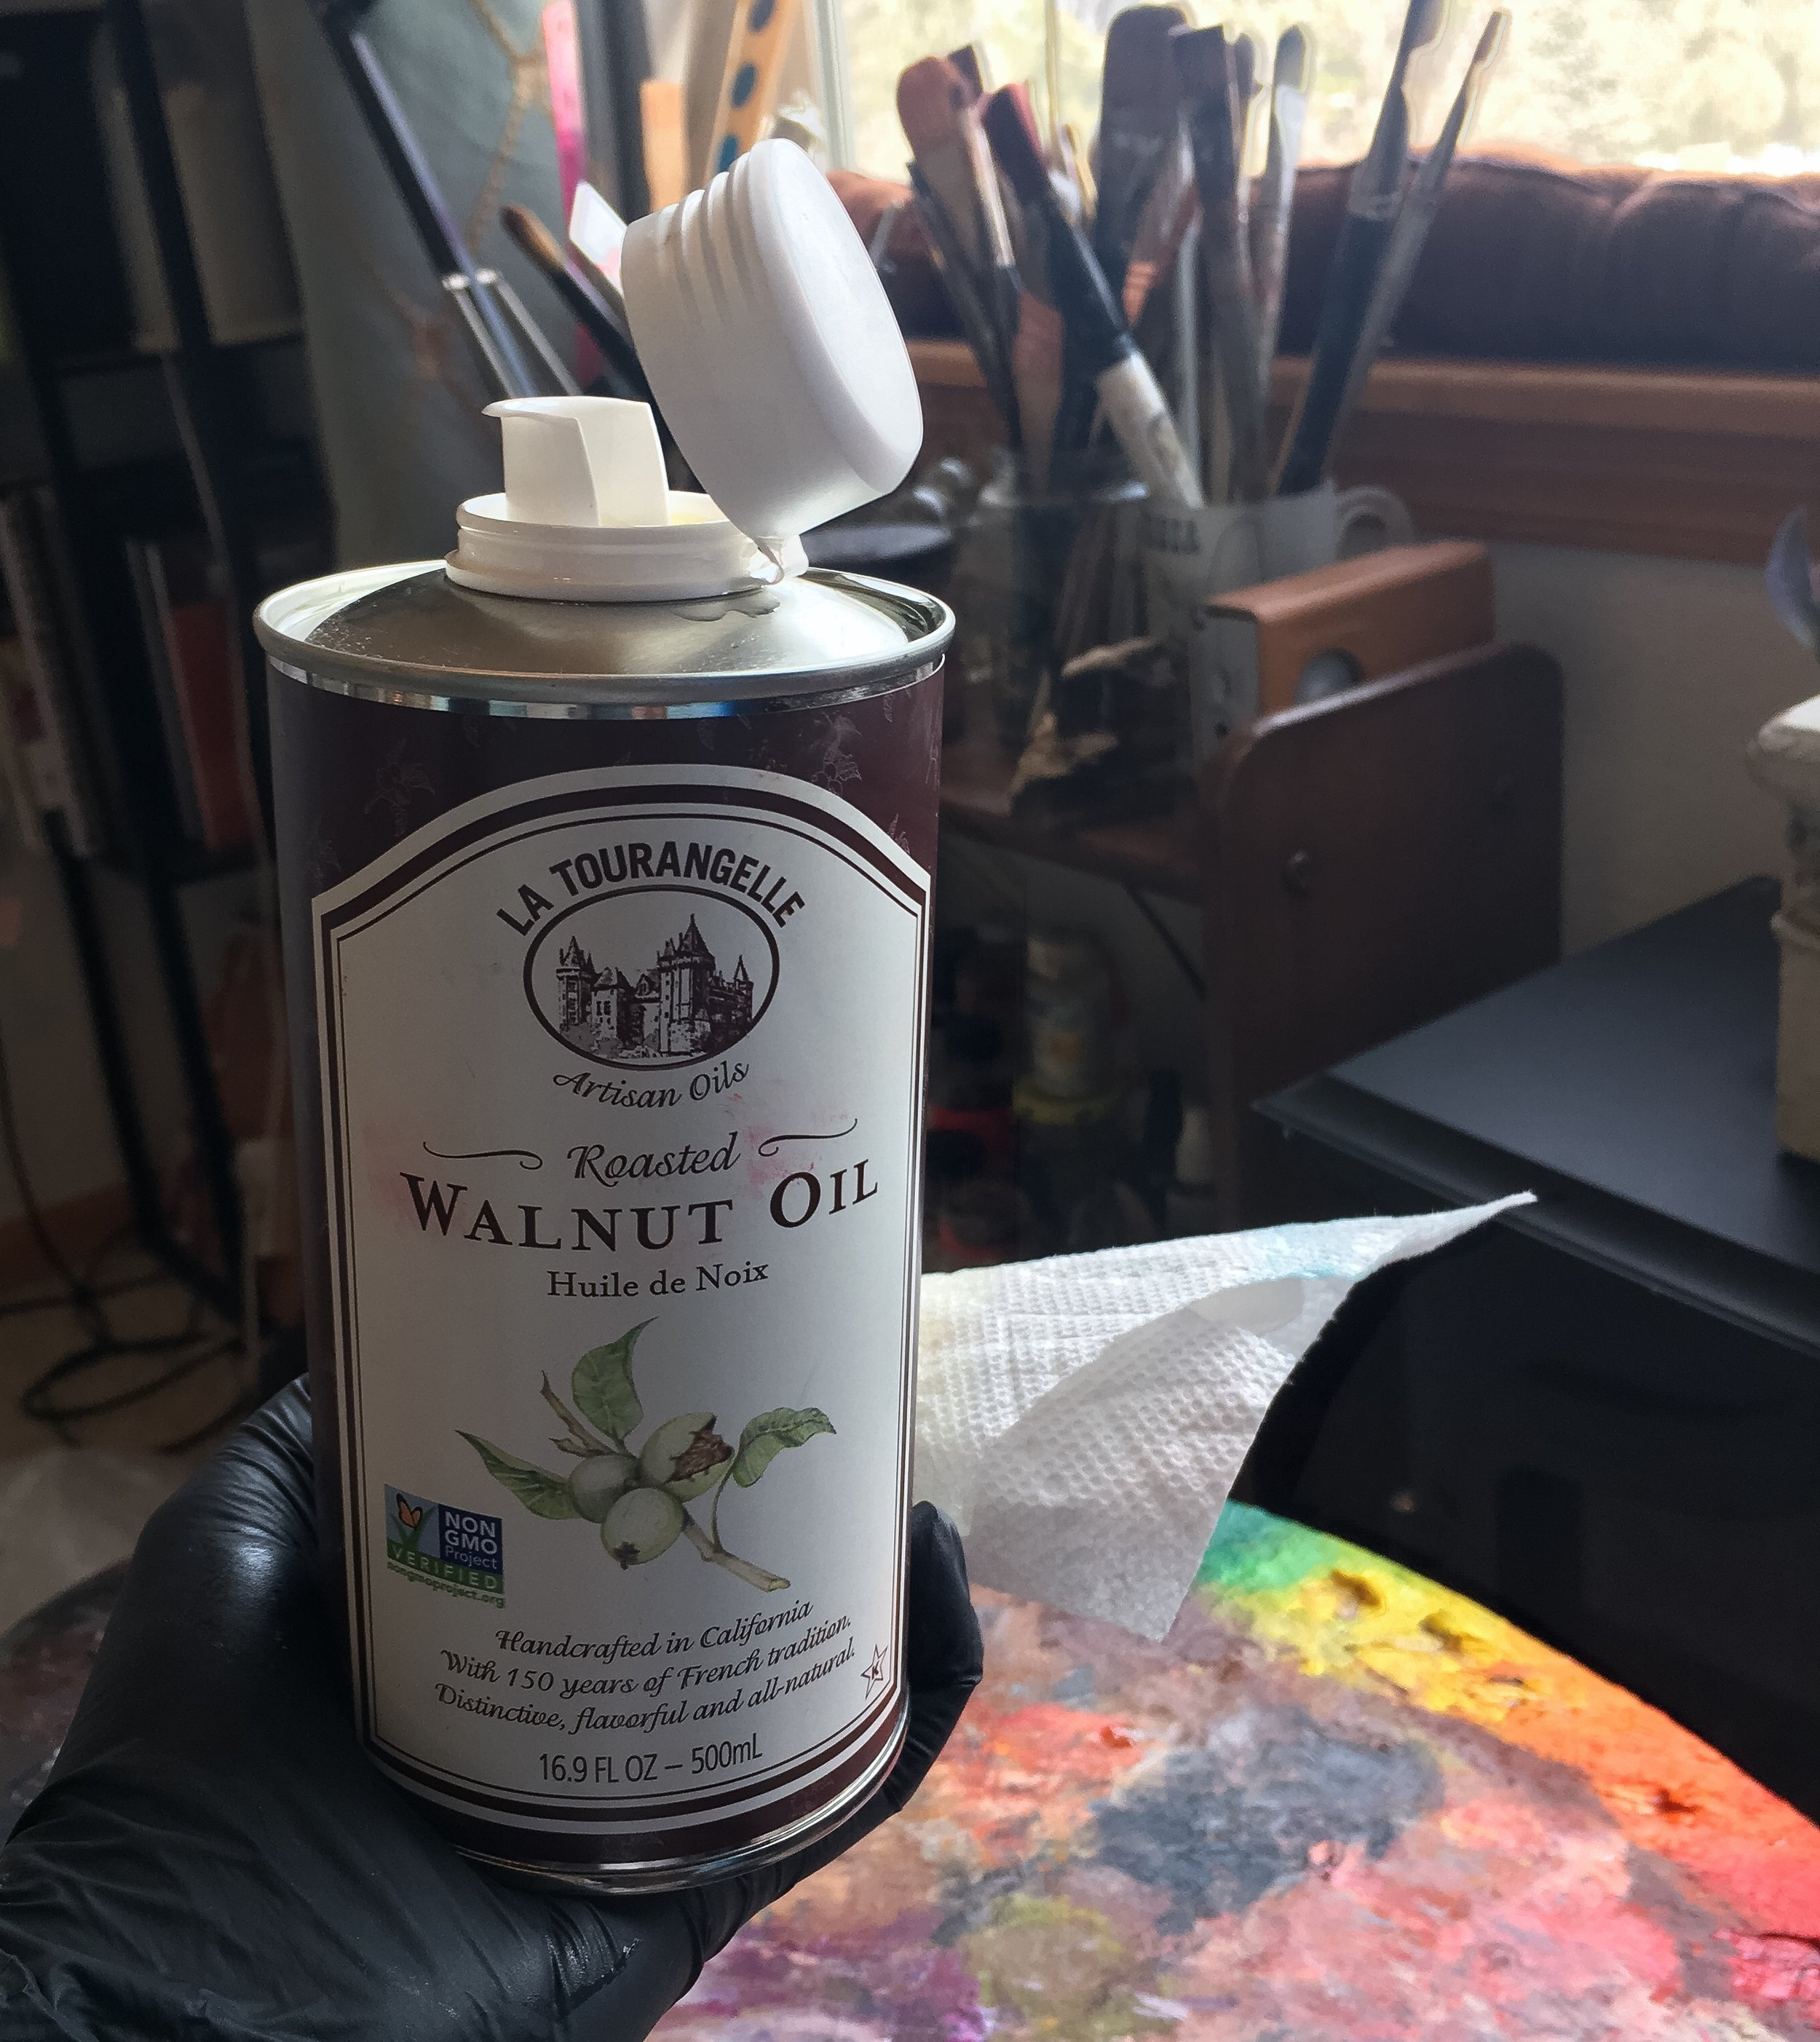 Walnut oil is a safer alternative to solvents